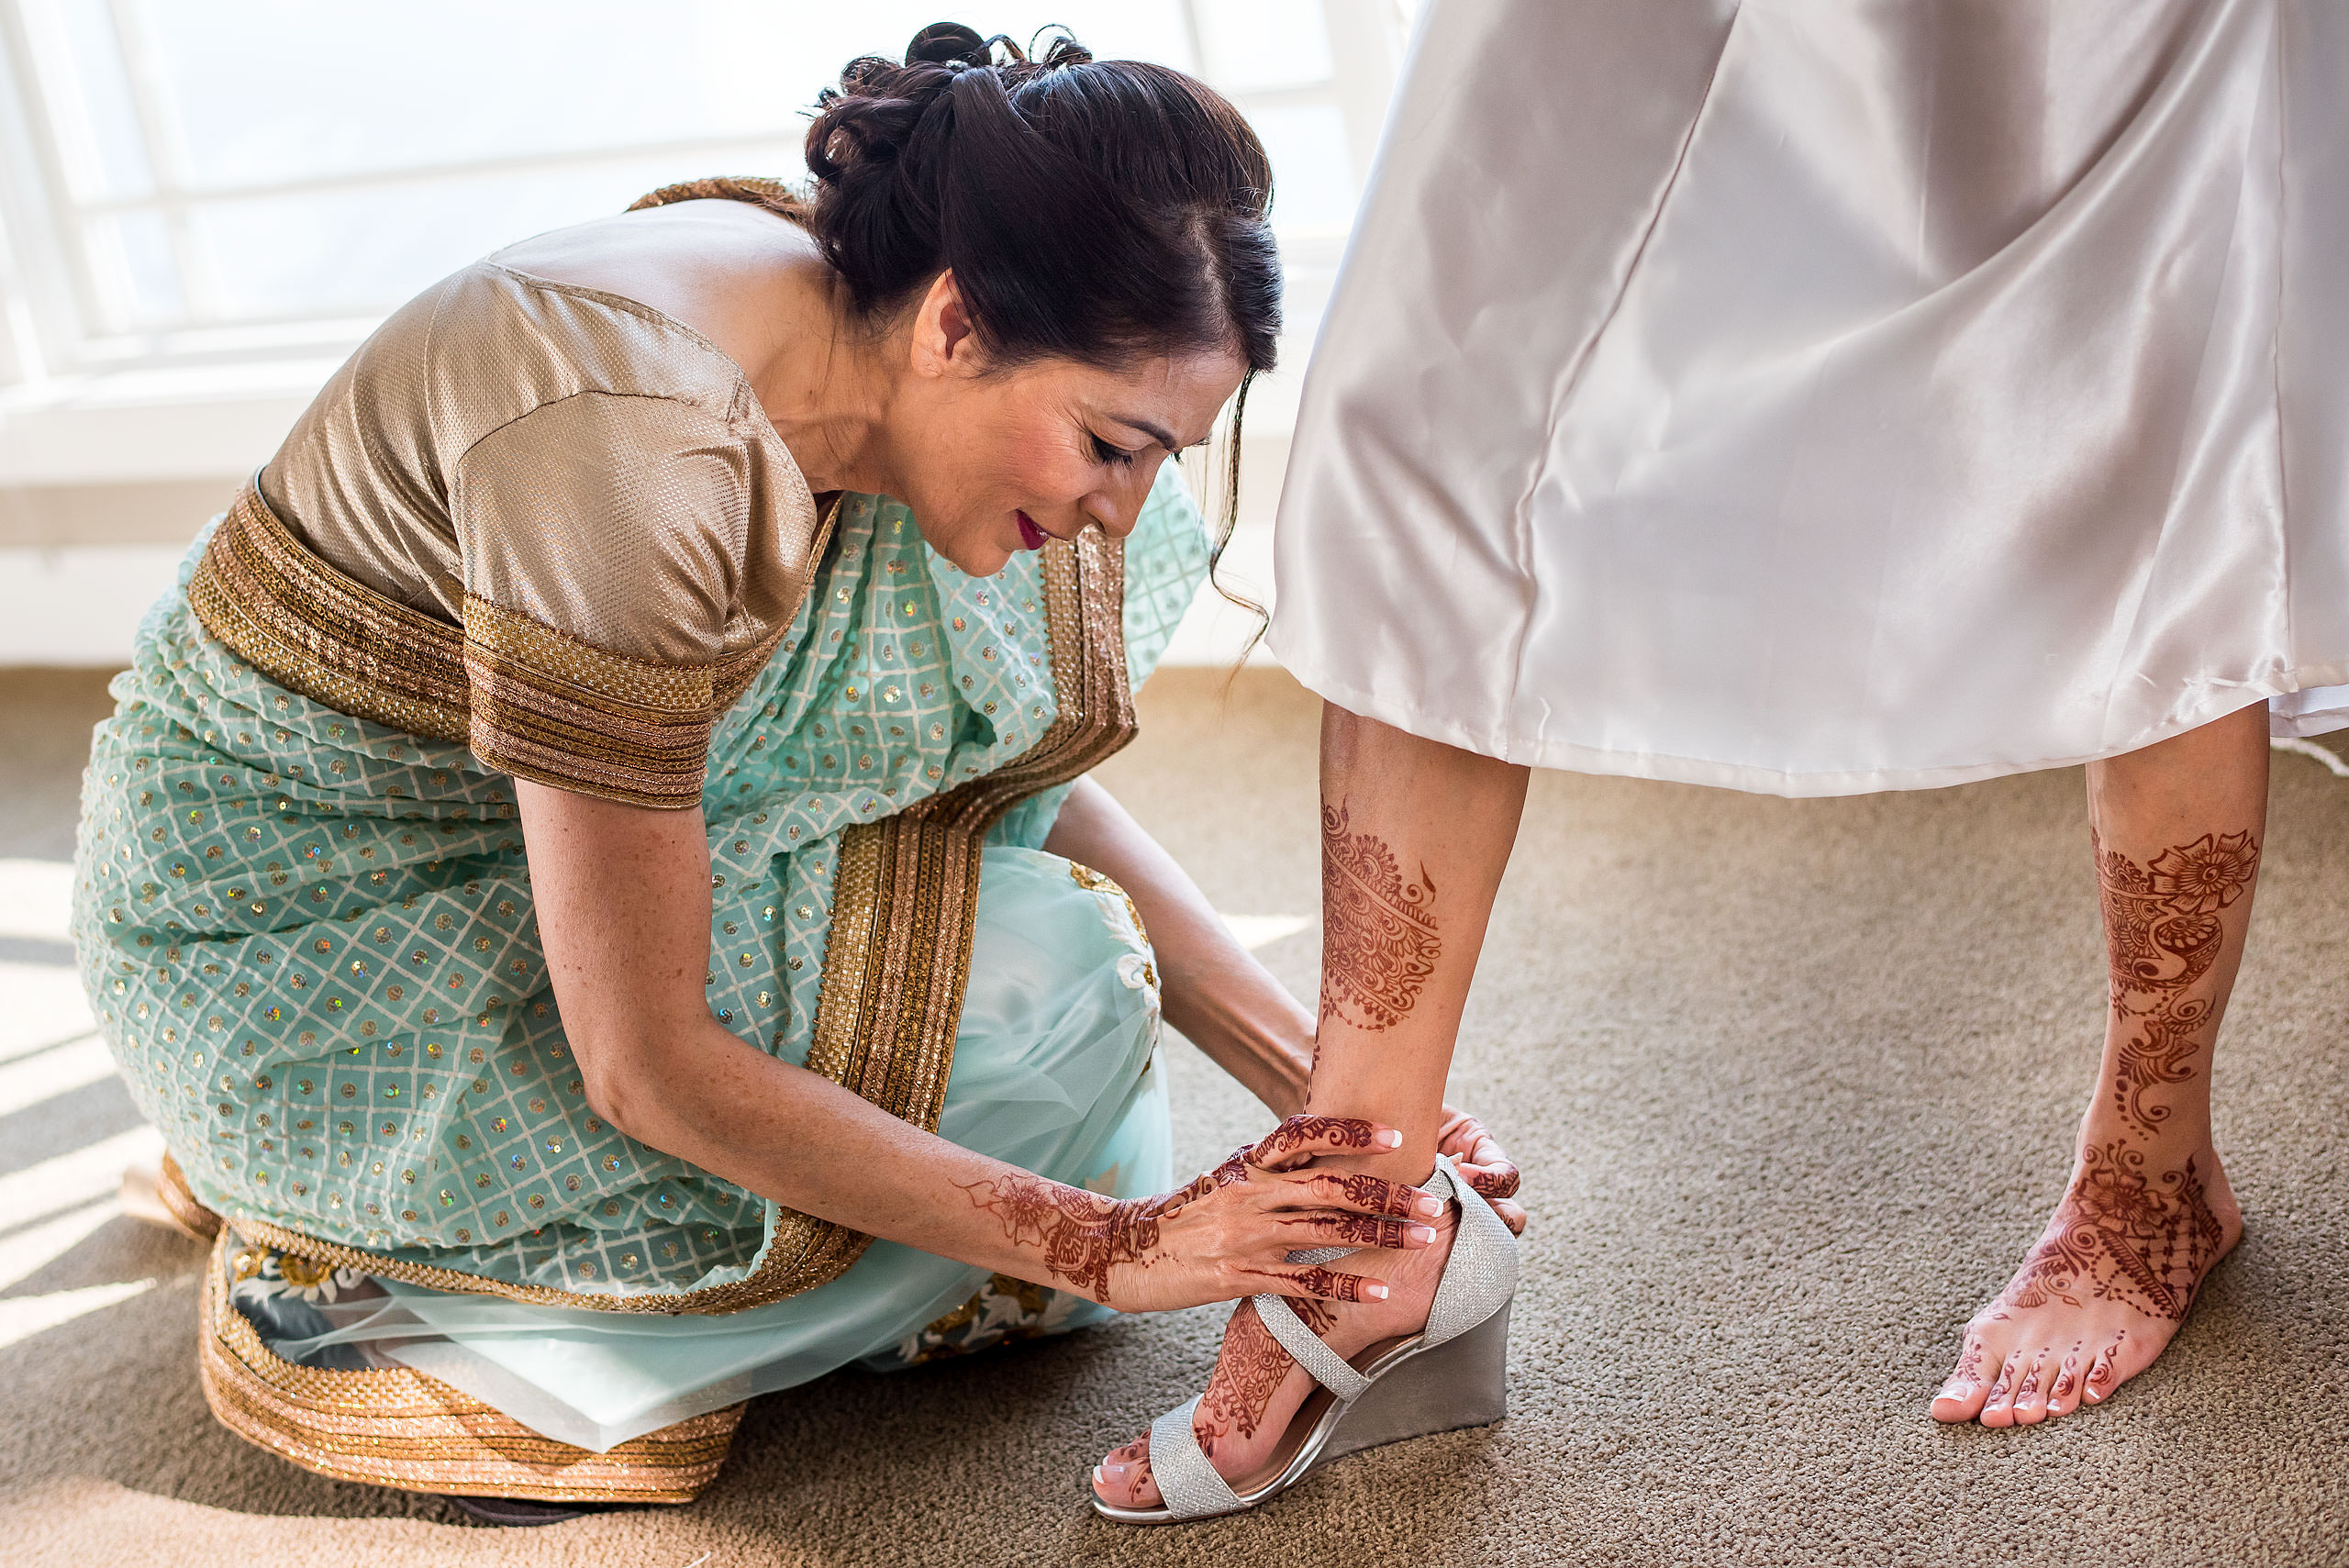 an Indian mom helping put on her daughters wedding shoes by Calgary Banff Wedding Photographer Sean LeBlanc